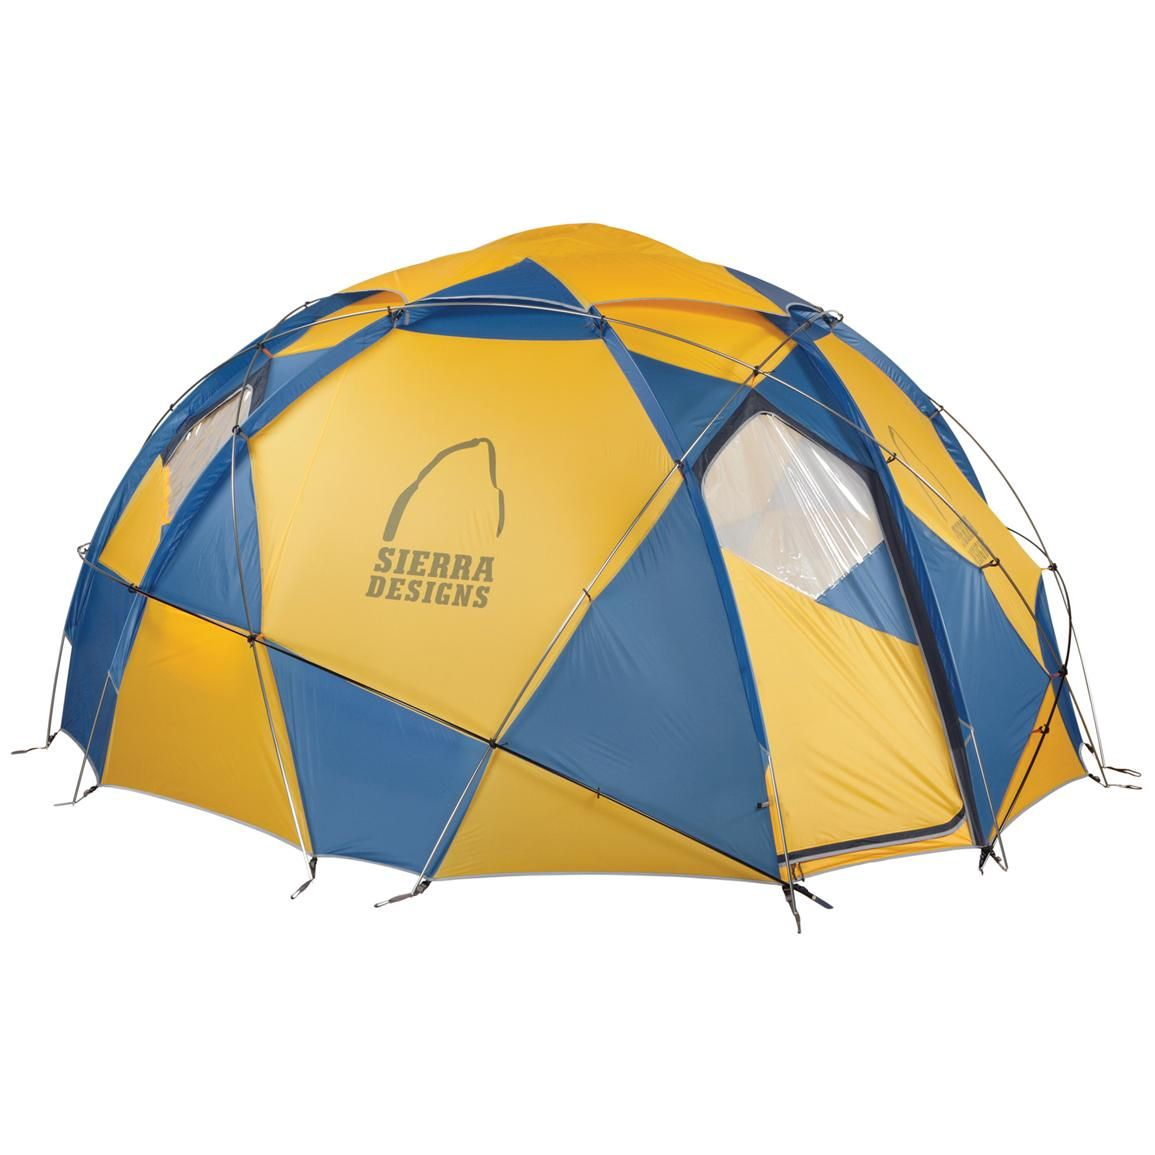 Sierra Designs® Grand Mothership 12 Four-Season Tent  sc 1 st  Pinterest : sierra designs stretch dome tent - memphite.com